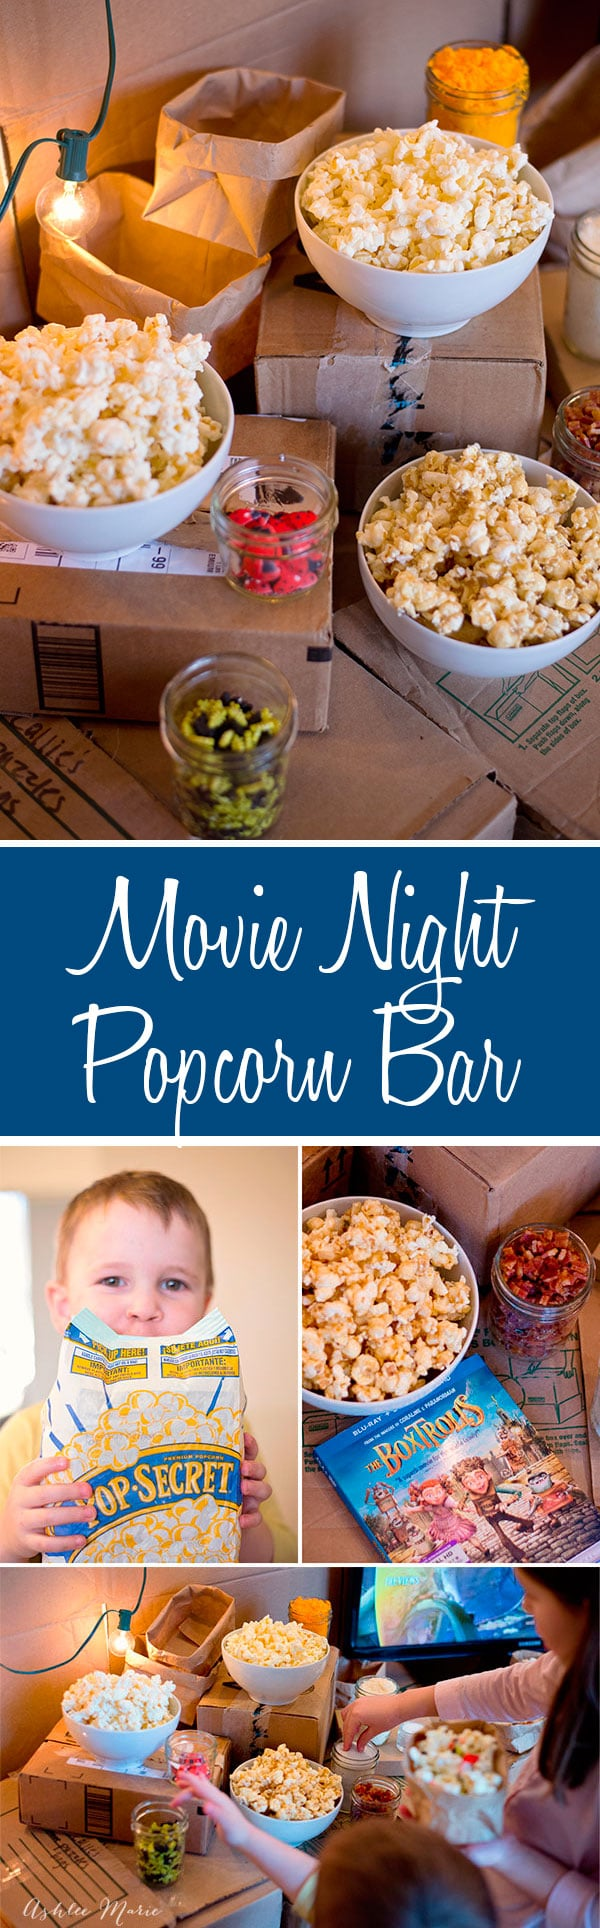 Family movie night at our house means lots and lots of popcorn! come see our family popcorn bar with toppings and mix ins